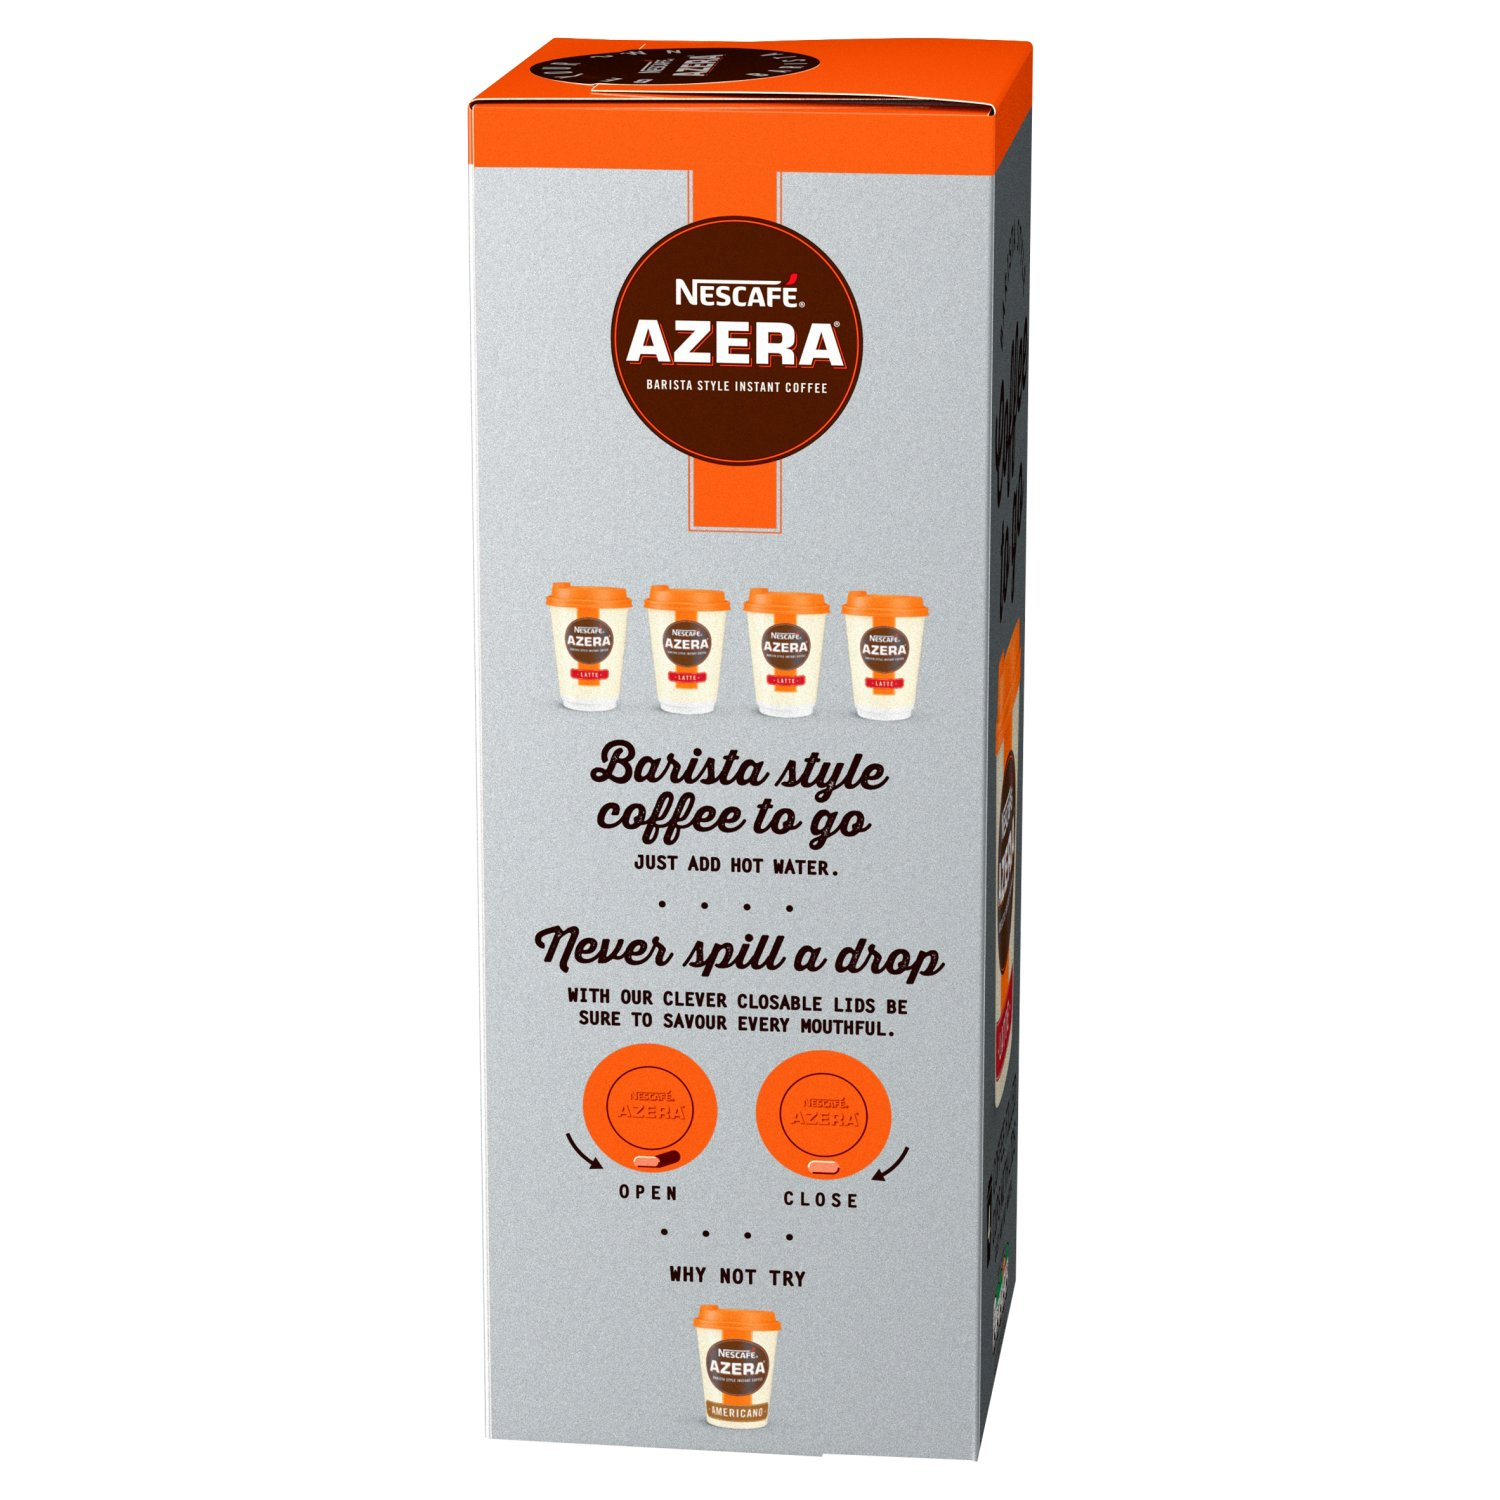 Nescafe Azera To Go Latte Instant Coffee 4 Cups Pack Of 3 Total 12 Cups